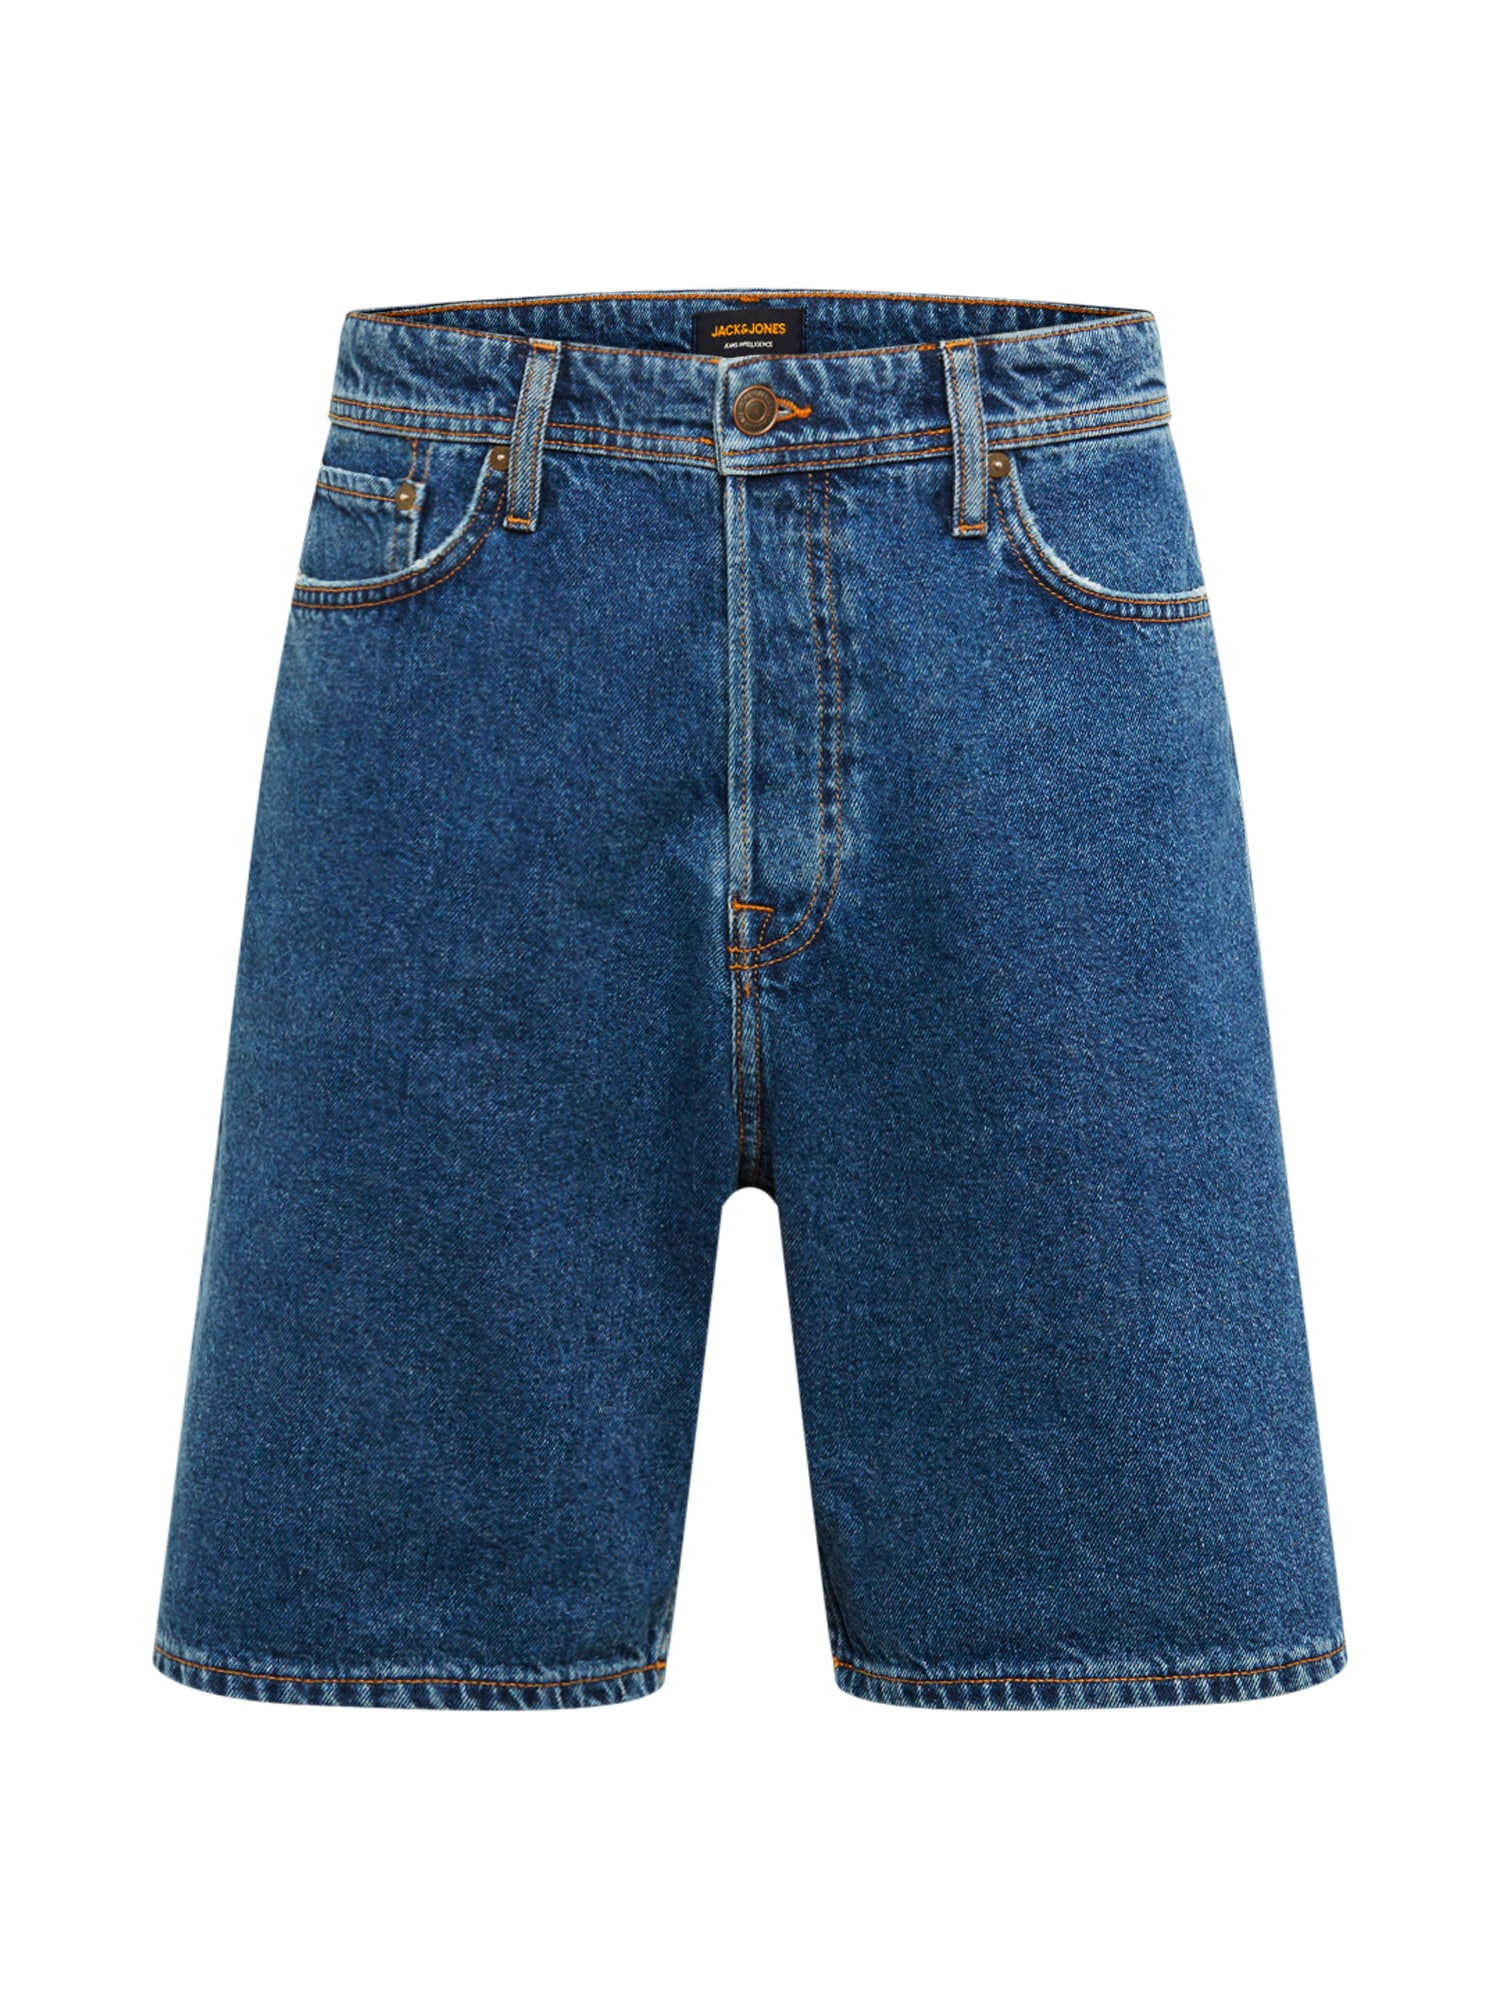 Džíny JJITONY JJORIGINAL SHORTS CJ 025 modrá JACK & JONES